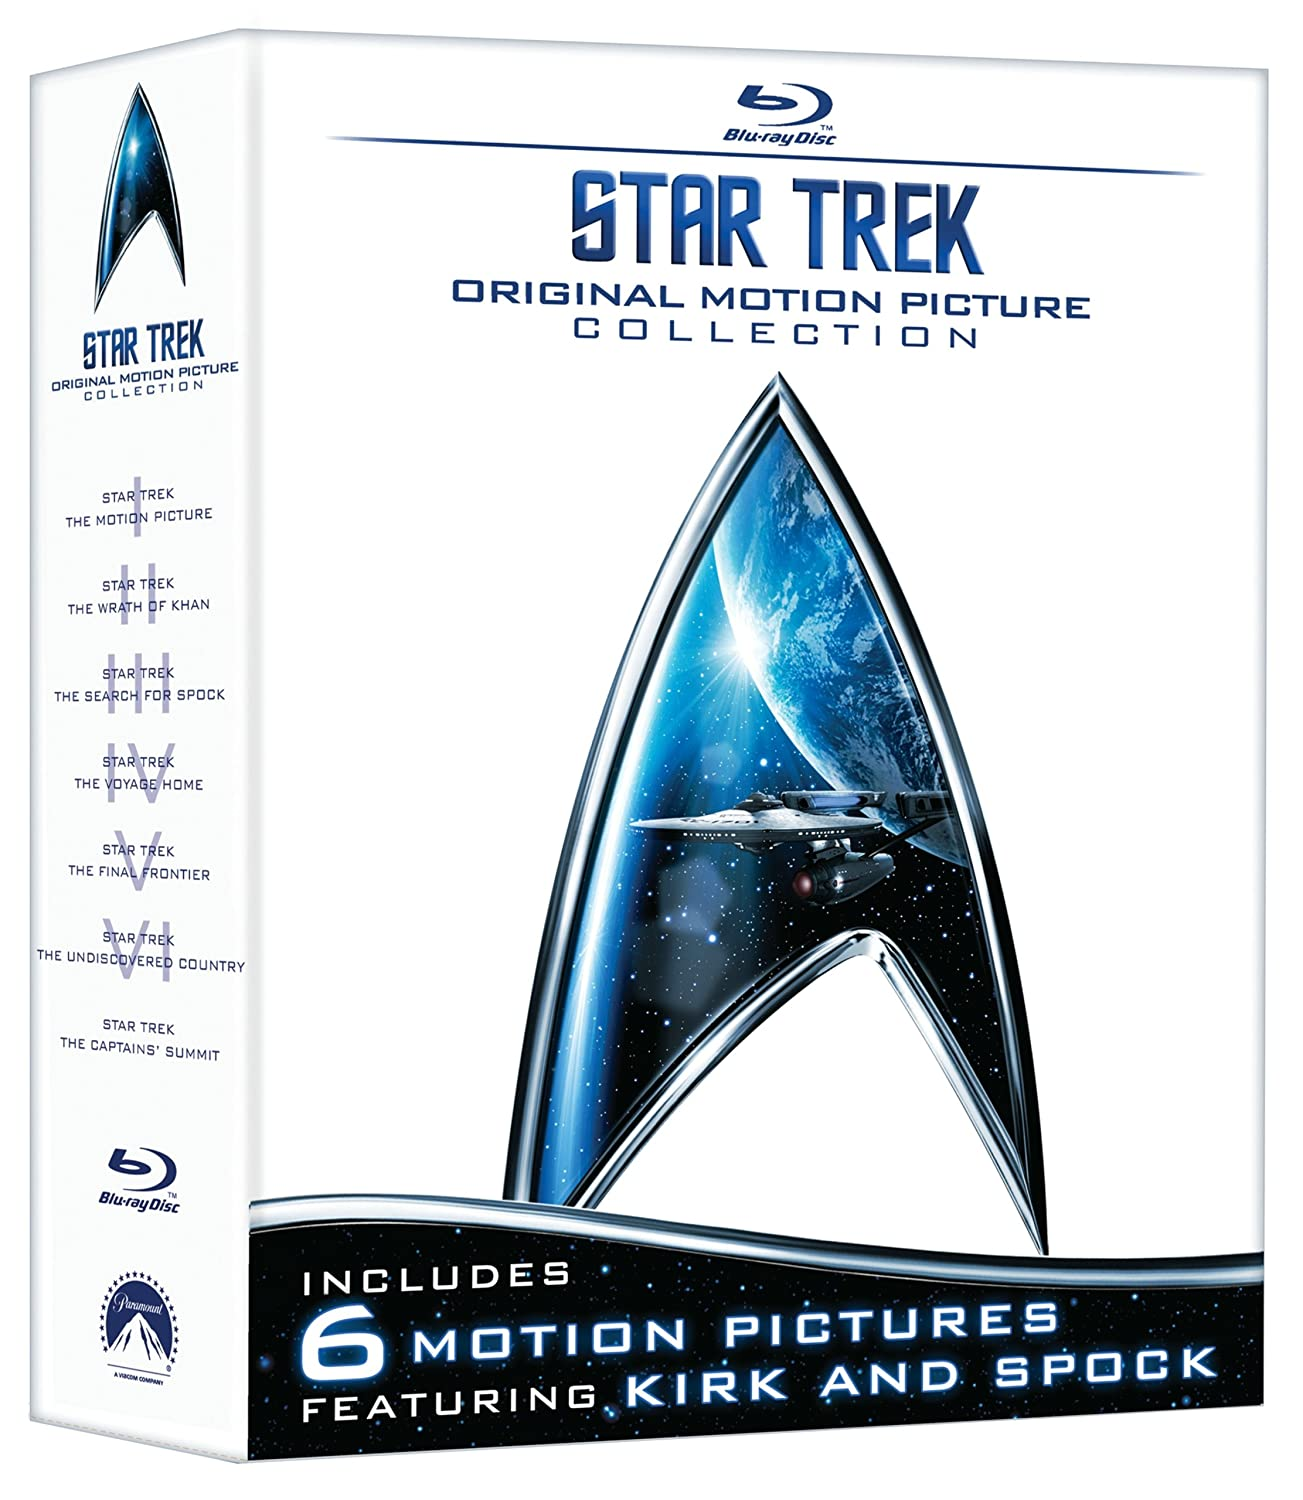 Today Only Star Trek: Original Motion Picture Collection Up to 65% Off